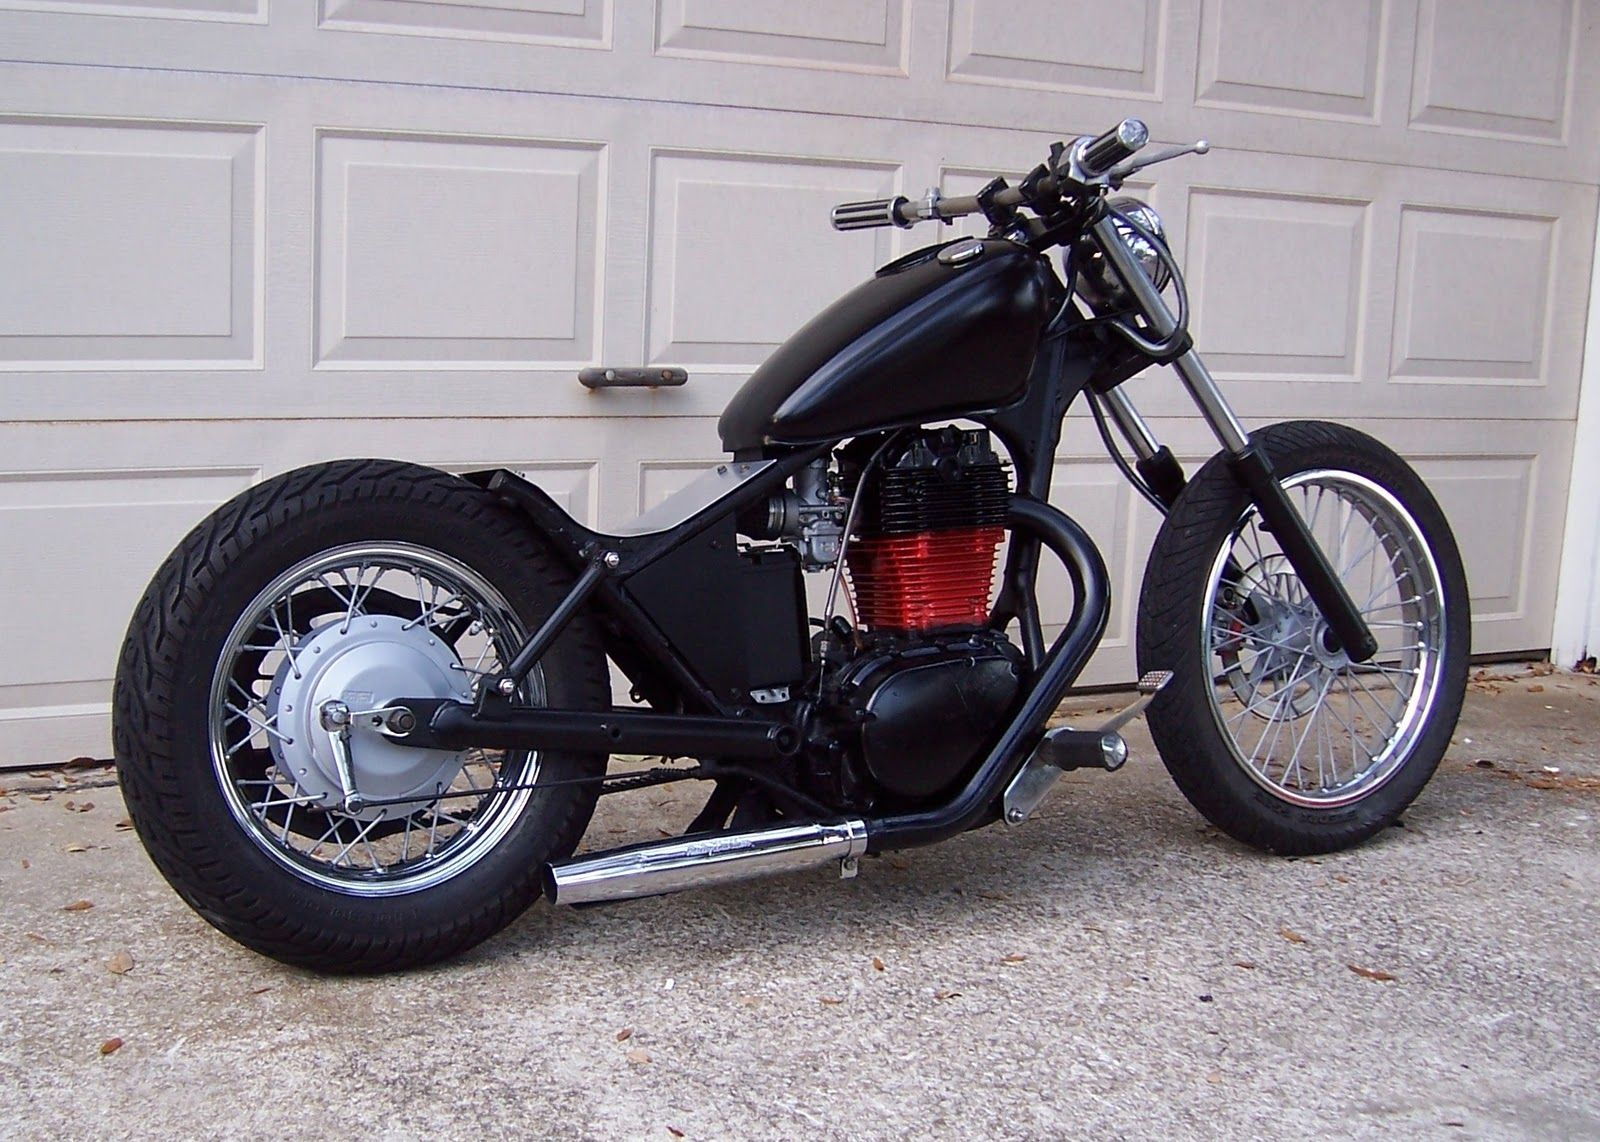 suzuki savage bobber buscar con google suzuki savage. Black Bedroom Furniture Sets. Home Design Ideas